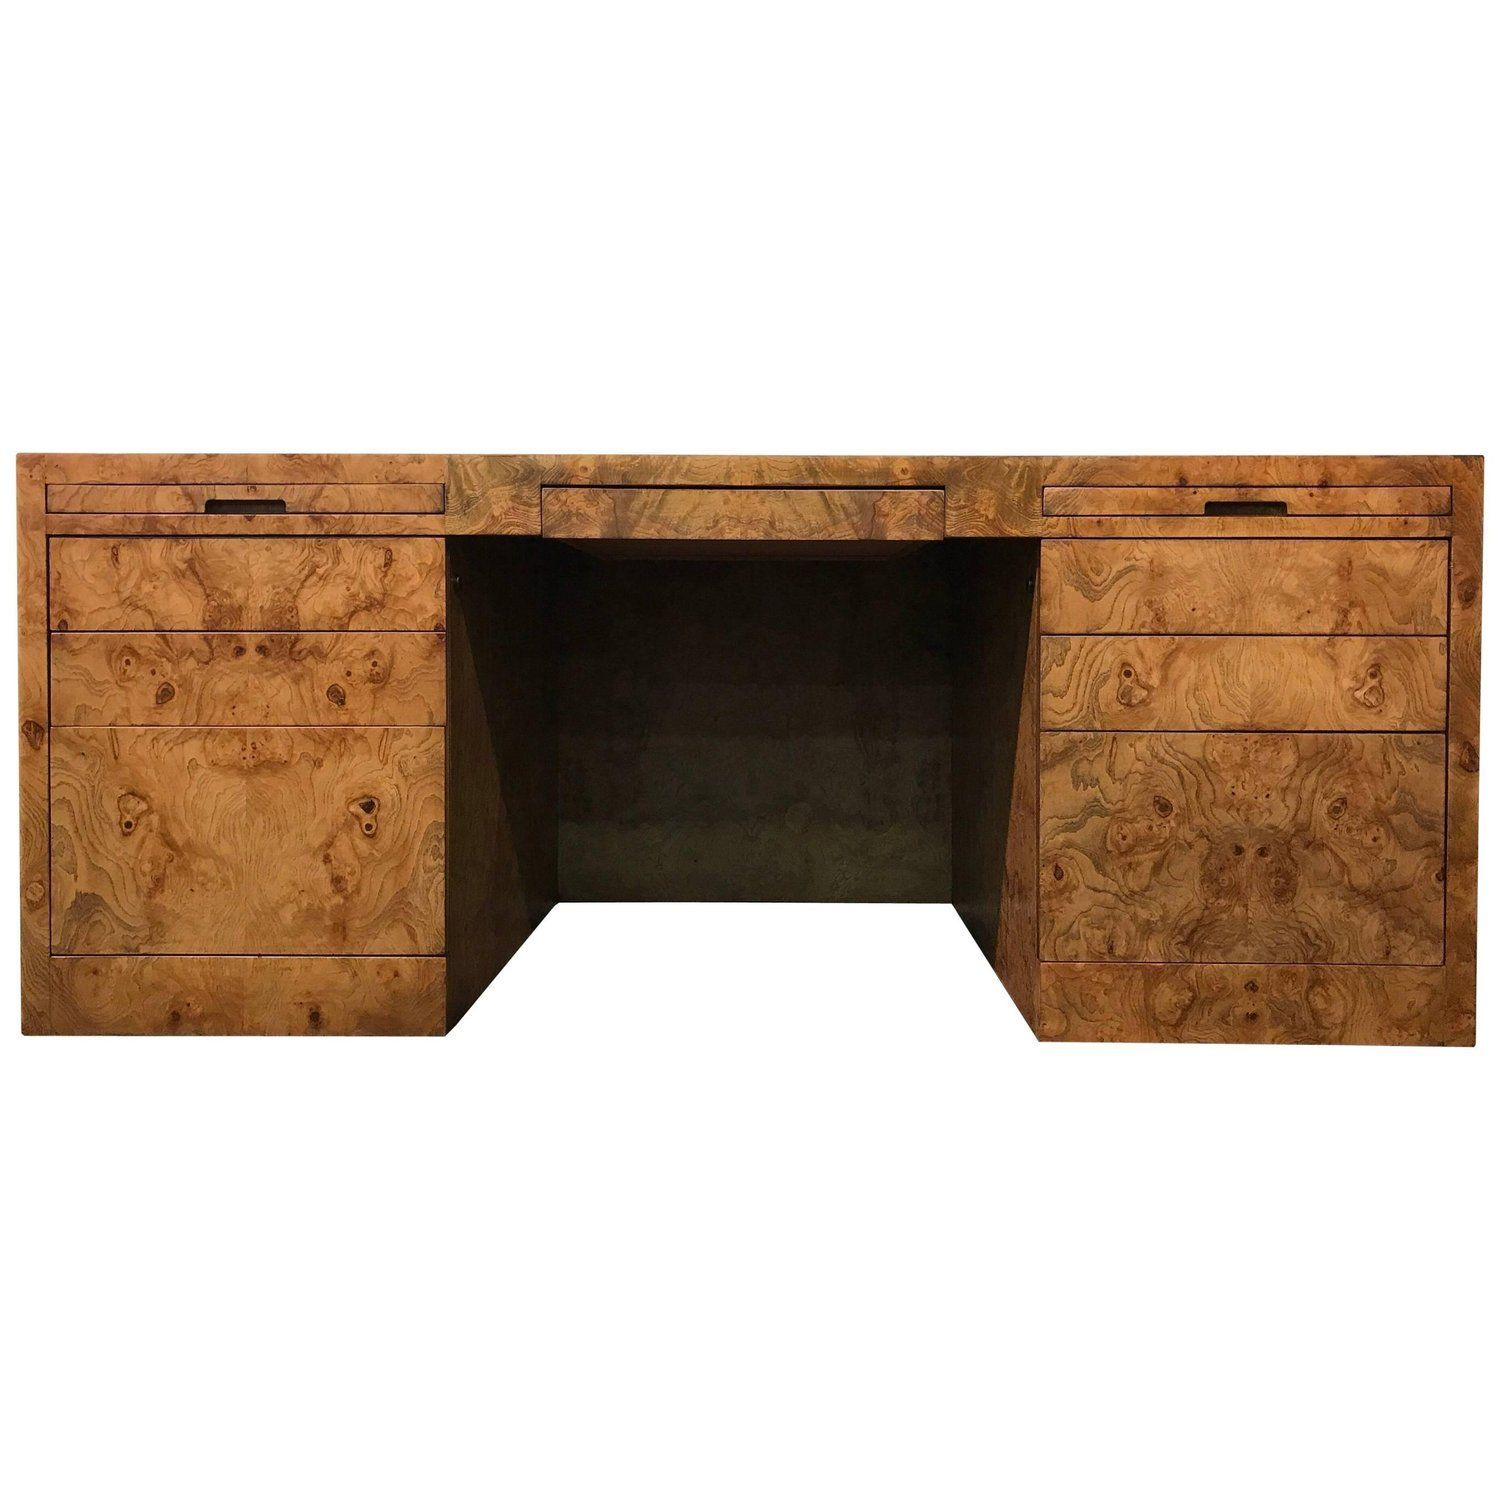 Midcentury Executive Desk In Burl Wood By Directional Furniture #Burlwood